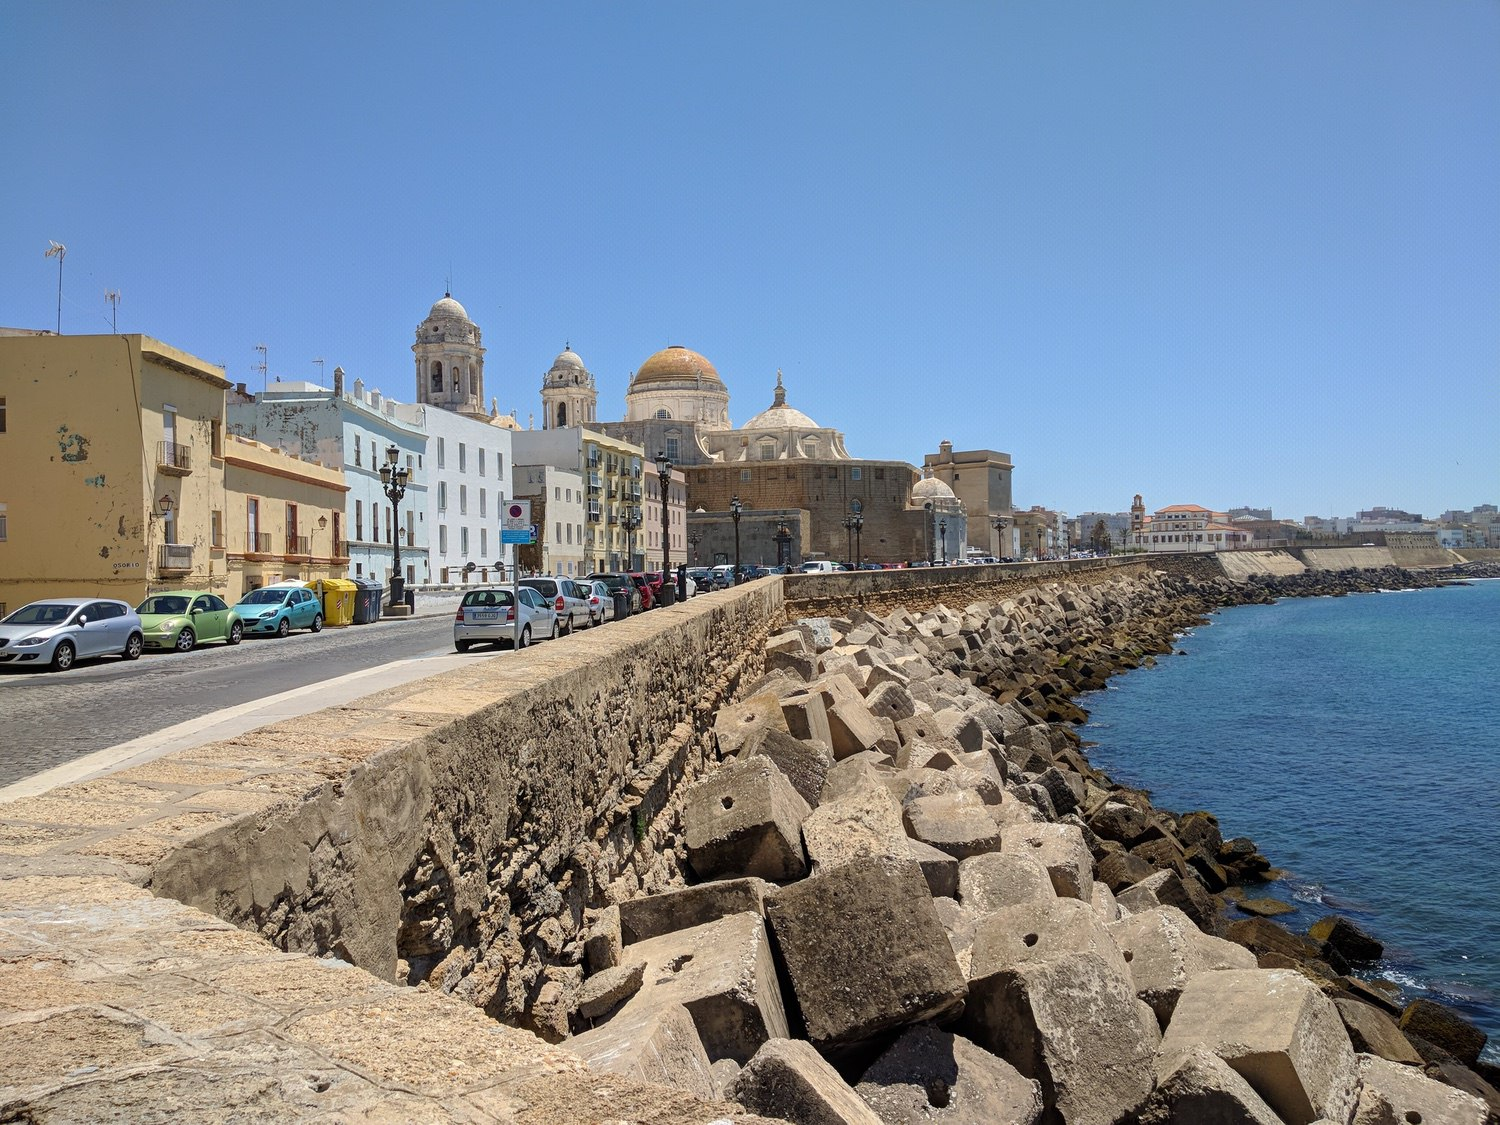 Cádiz ciudad. Photo by Eleazar Lázaro